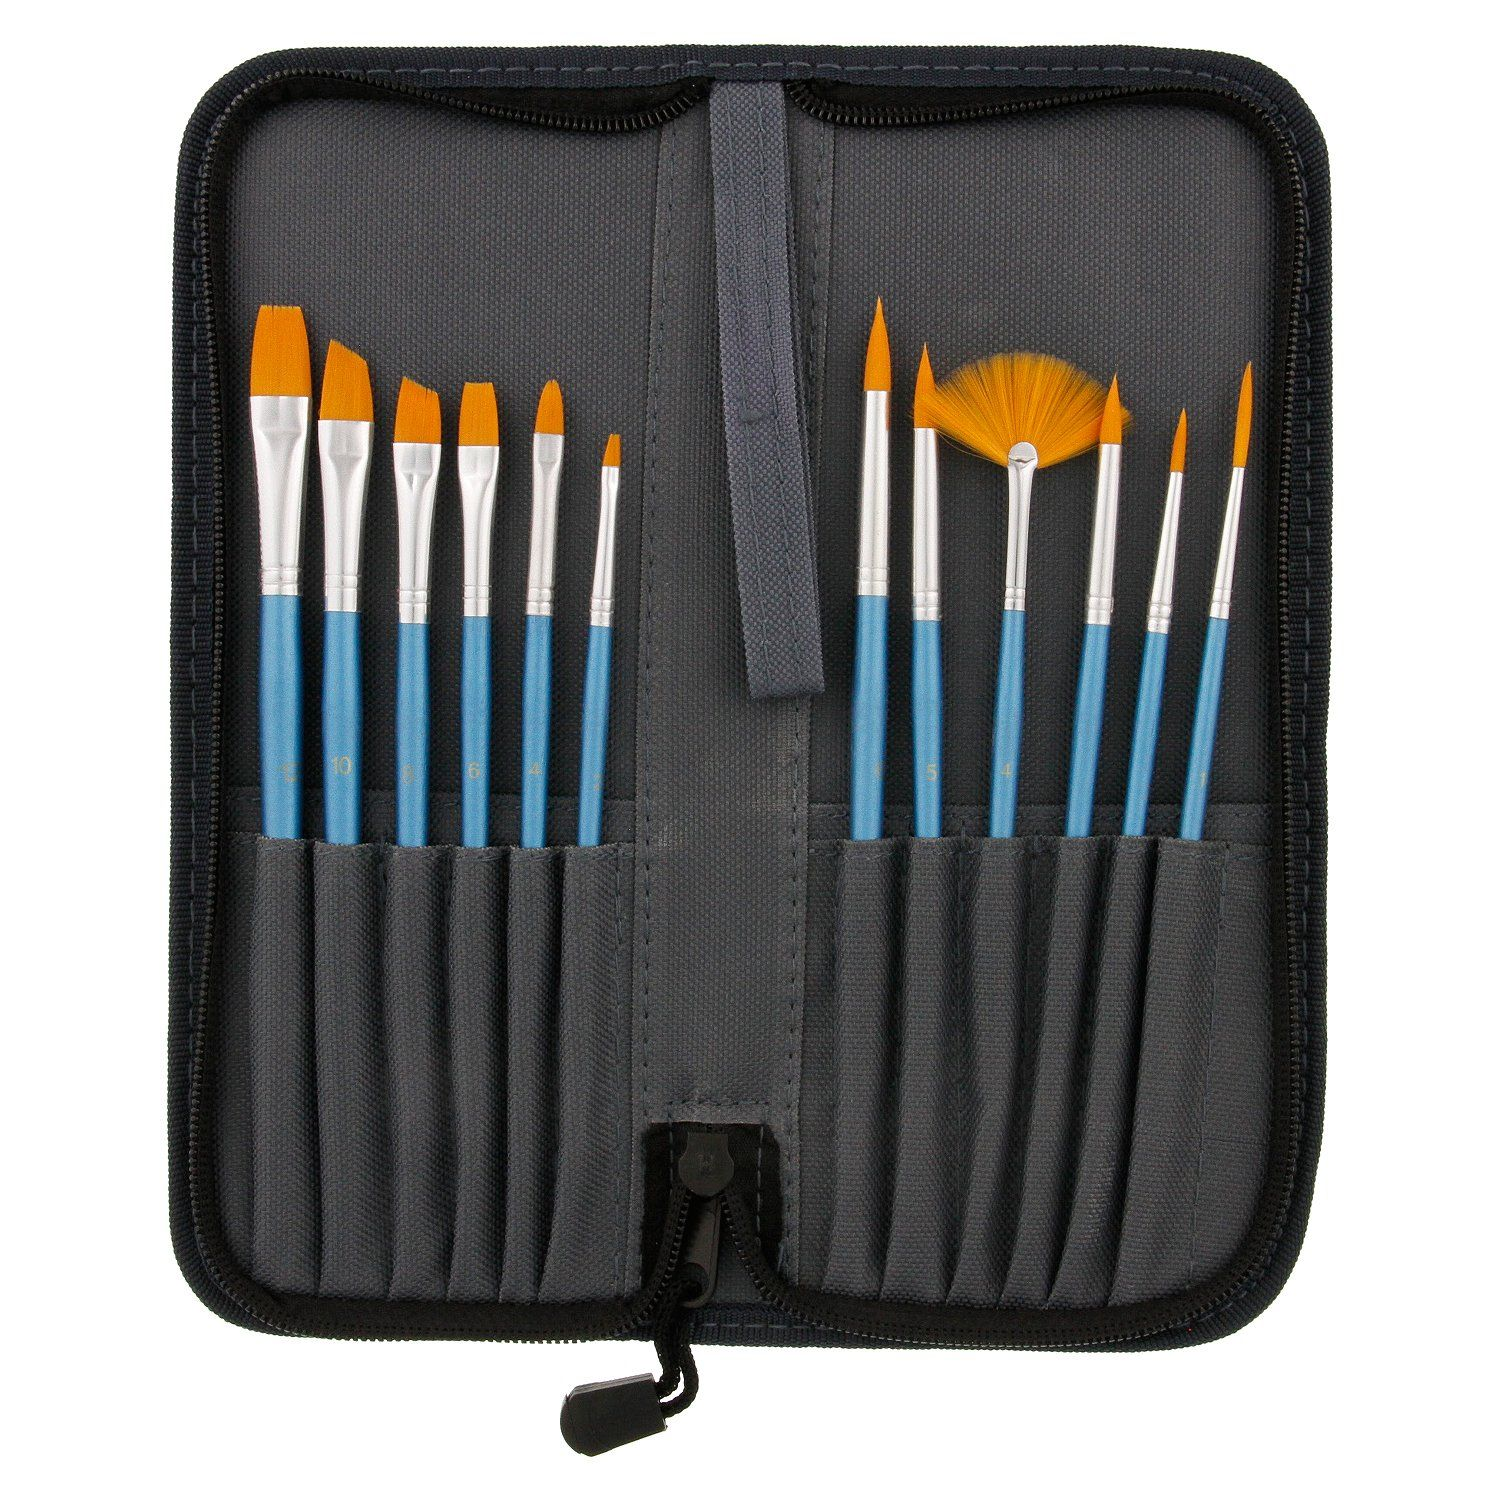 US Art Supply 133pc Deluxe Artist Painting Set with